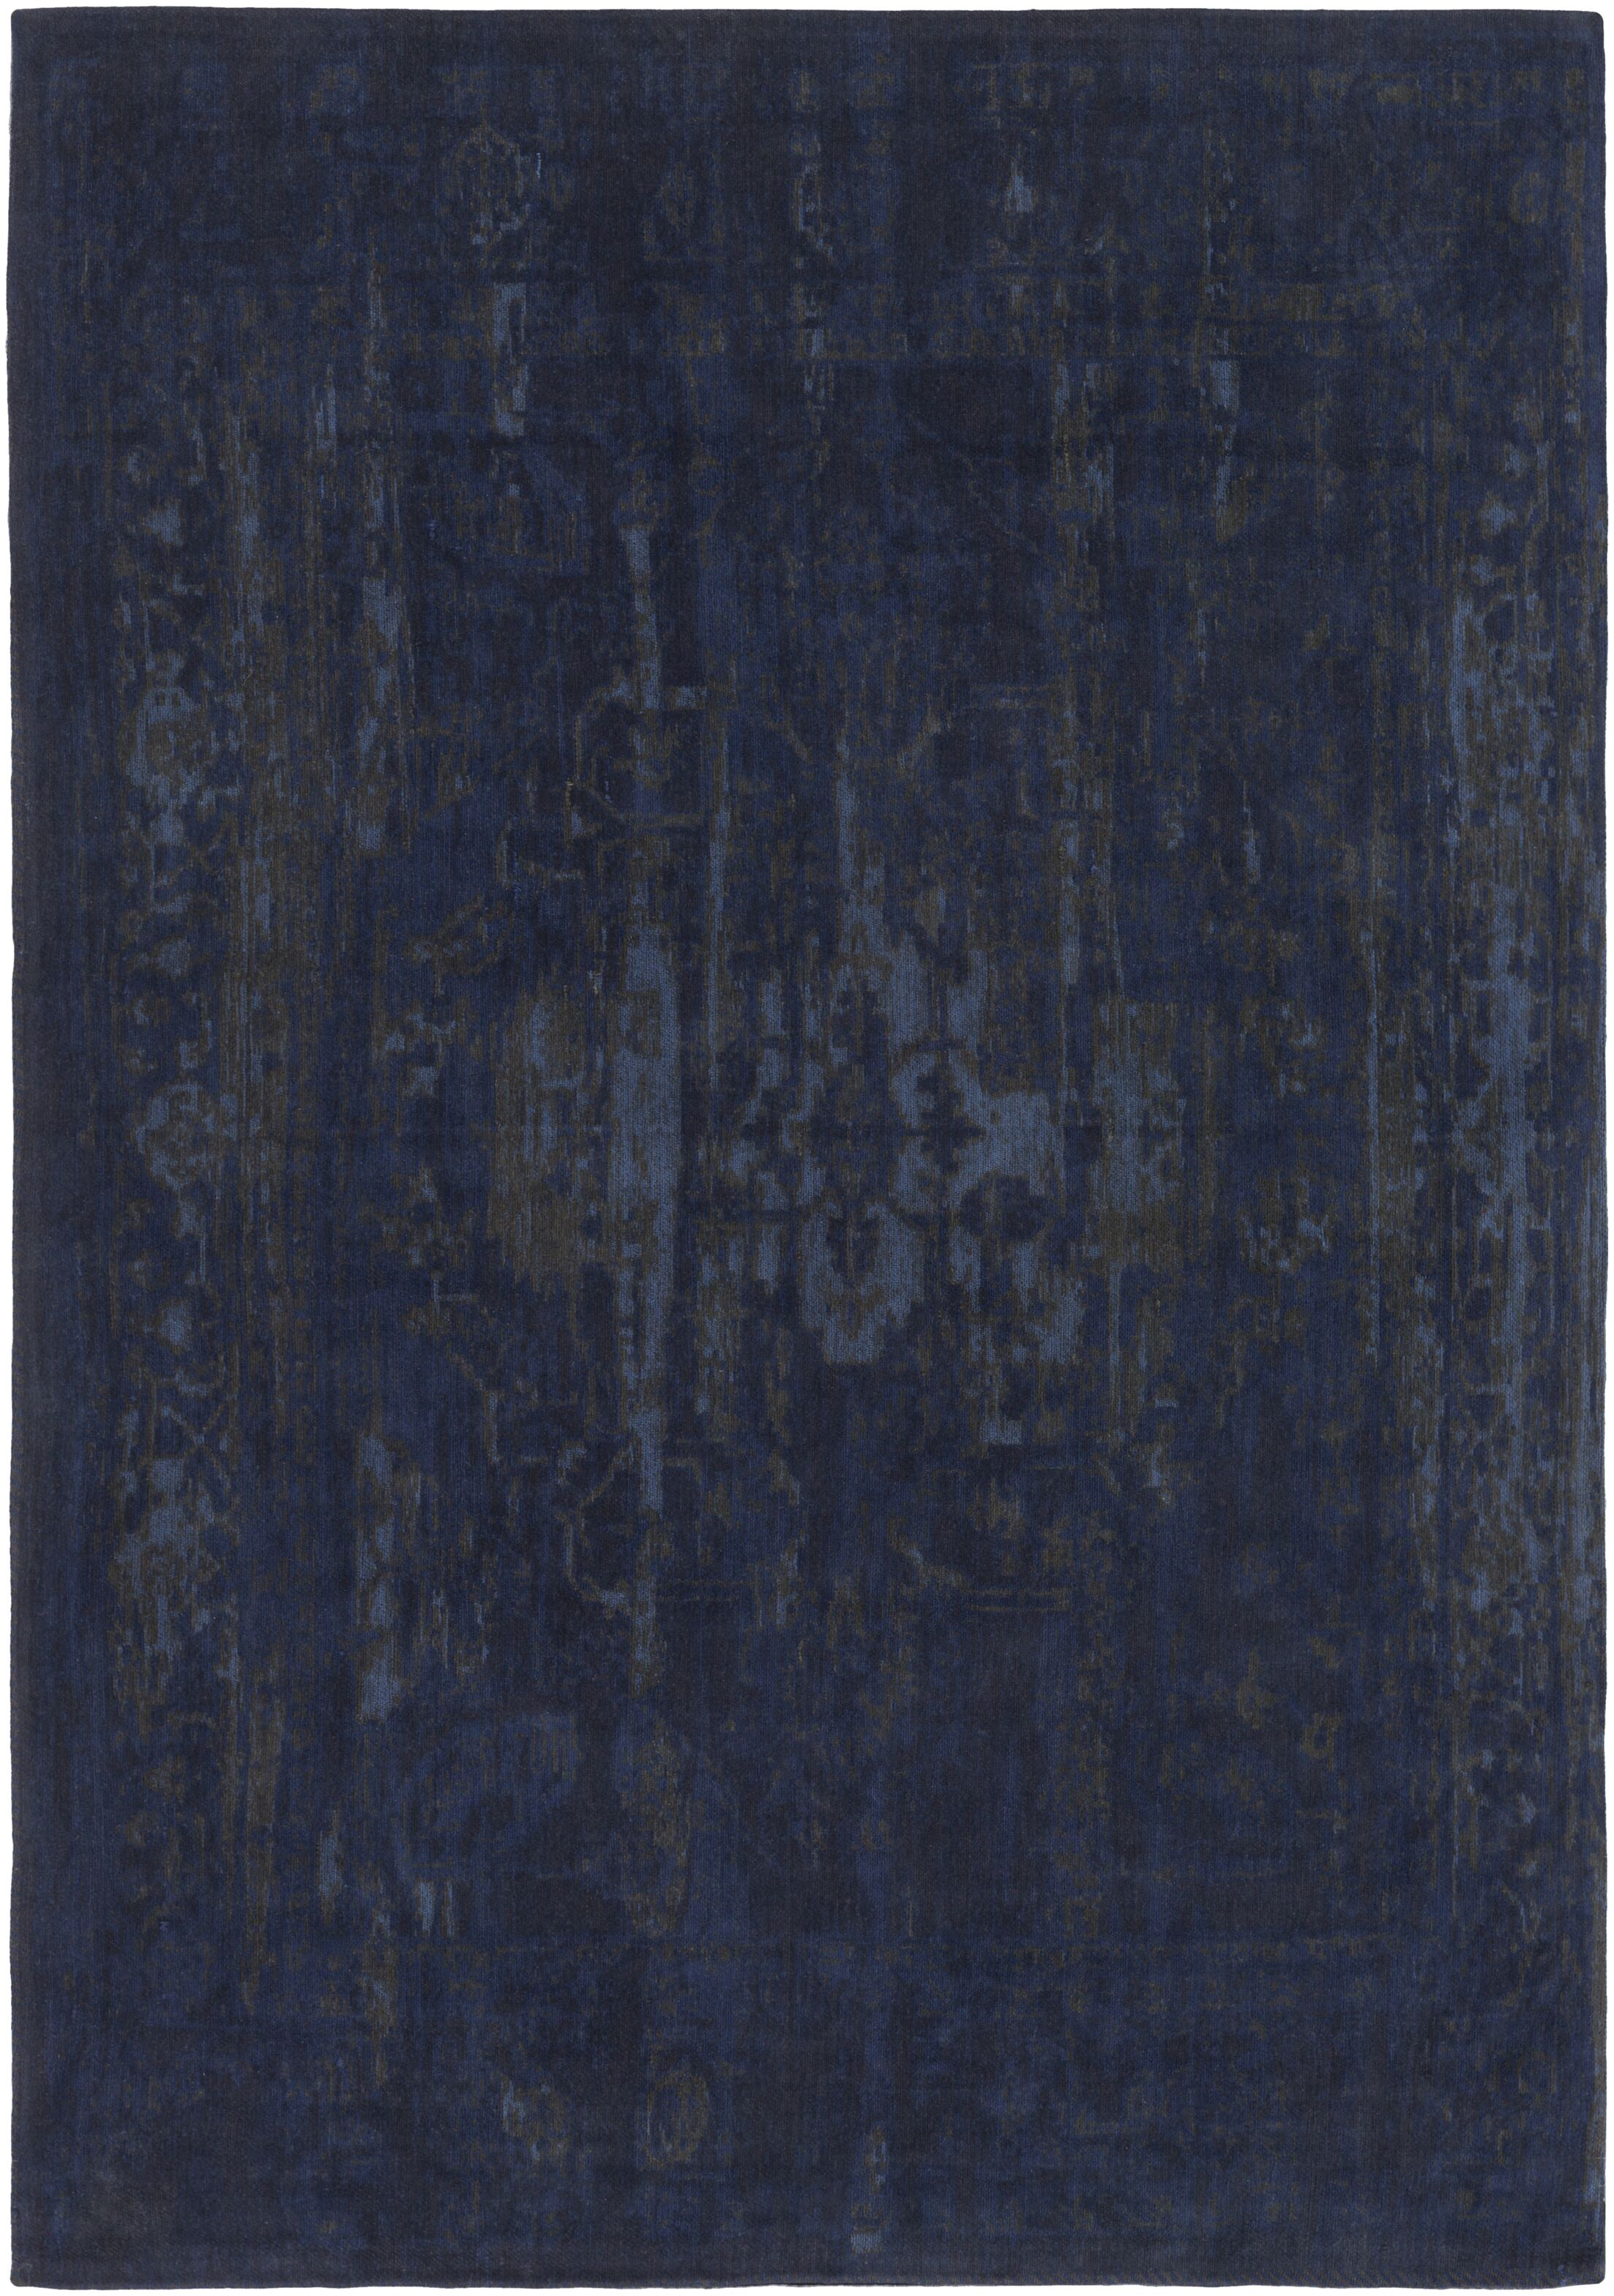 Mcintosh Hand Woven Navy/Gray Area Rug Rug Size: Rectangle 8' x 10'